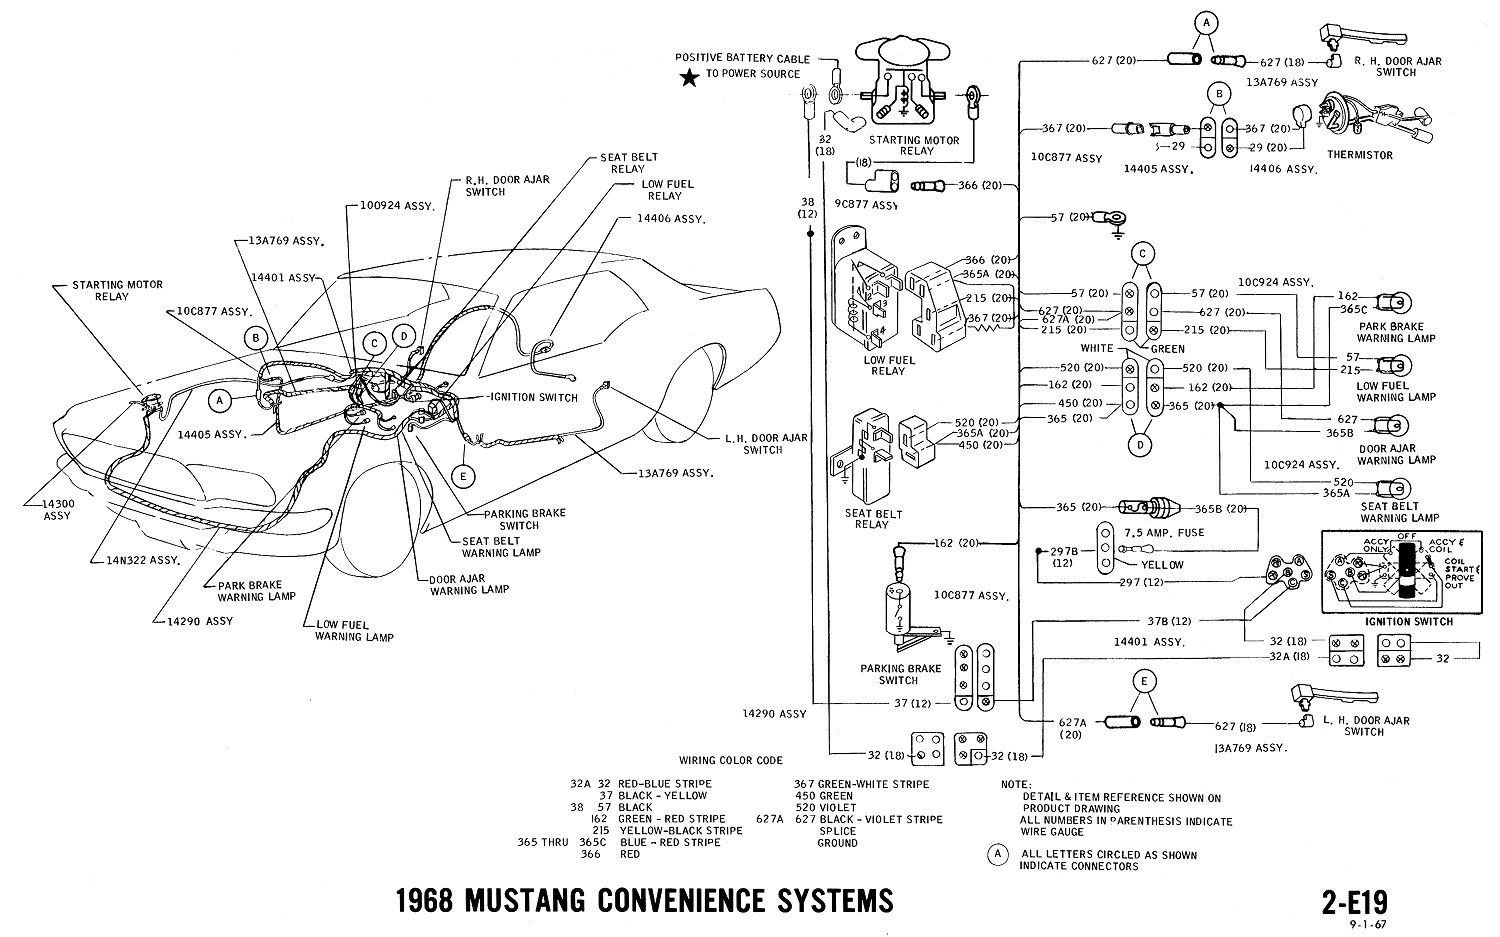 1968 mustang wiring diagram convenience systems 65 mustang dash wiring diagram 1965 ford mustang wiring diagram 1965 ford mustang wiring diagrams at suagrazia.org